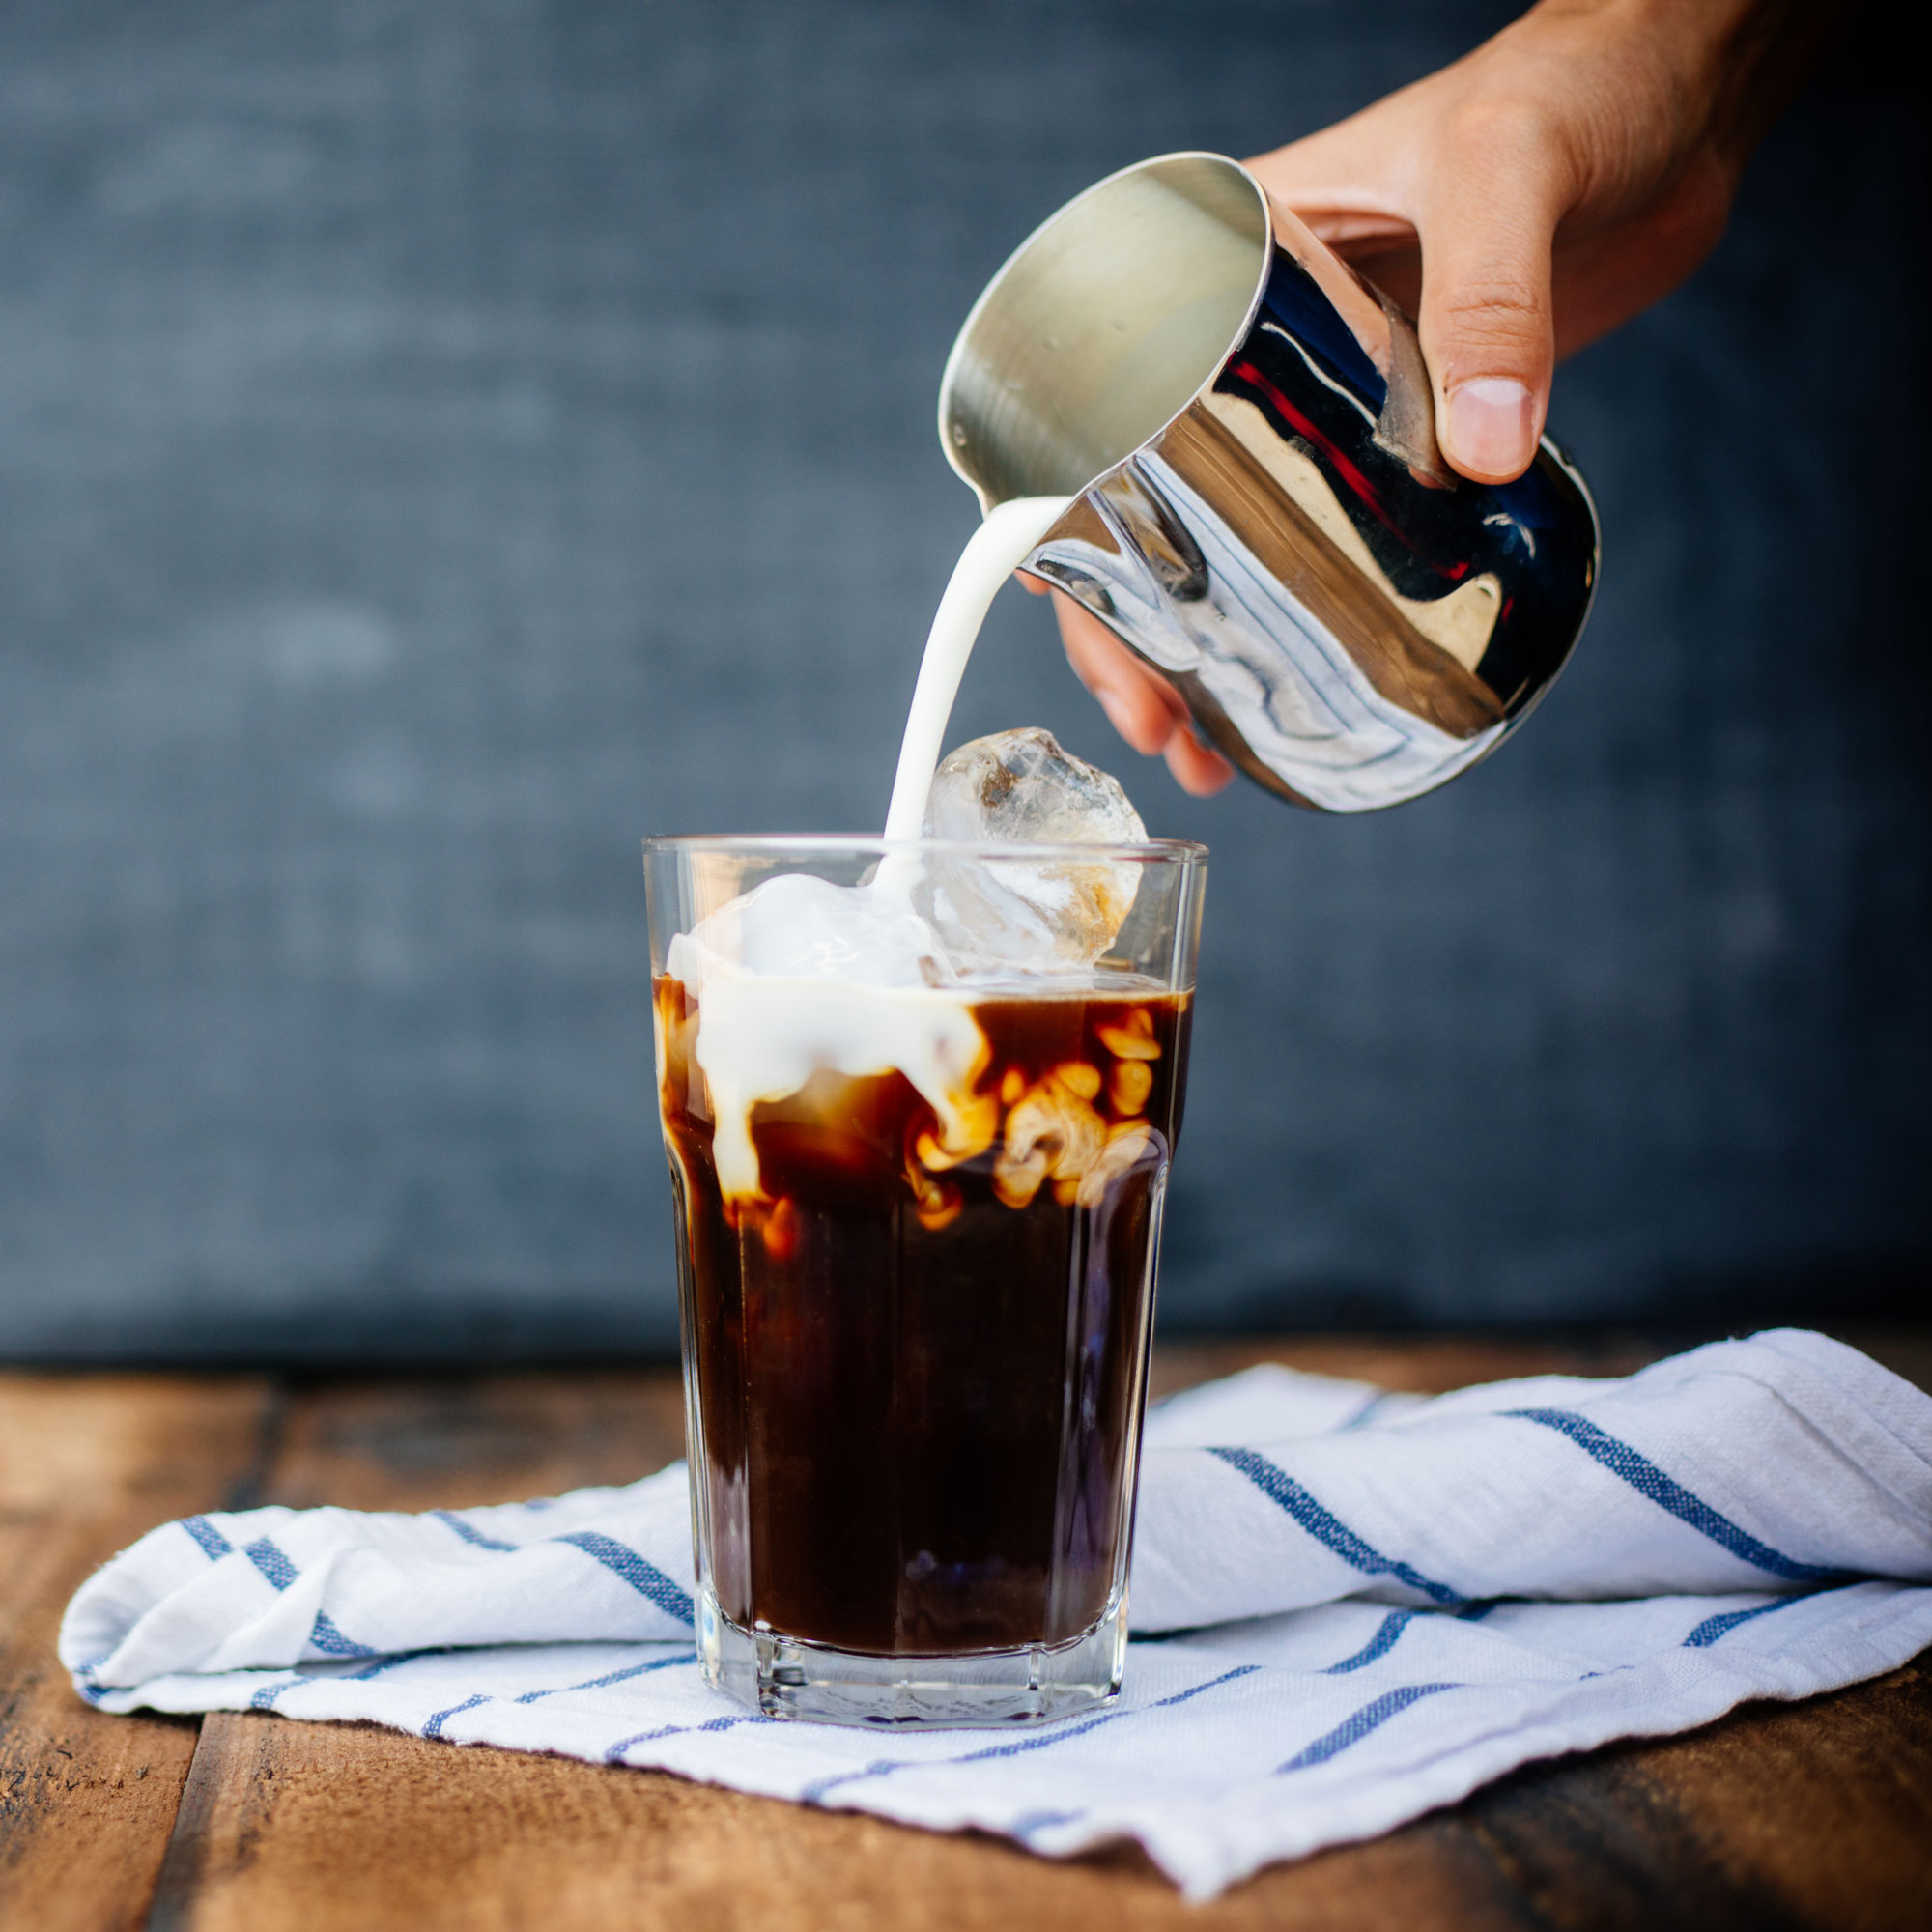 5 Iced Coffee Mistakes You're Probably Making, According to a Master Barista